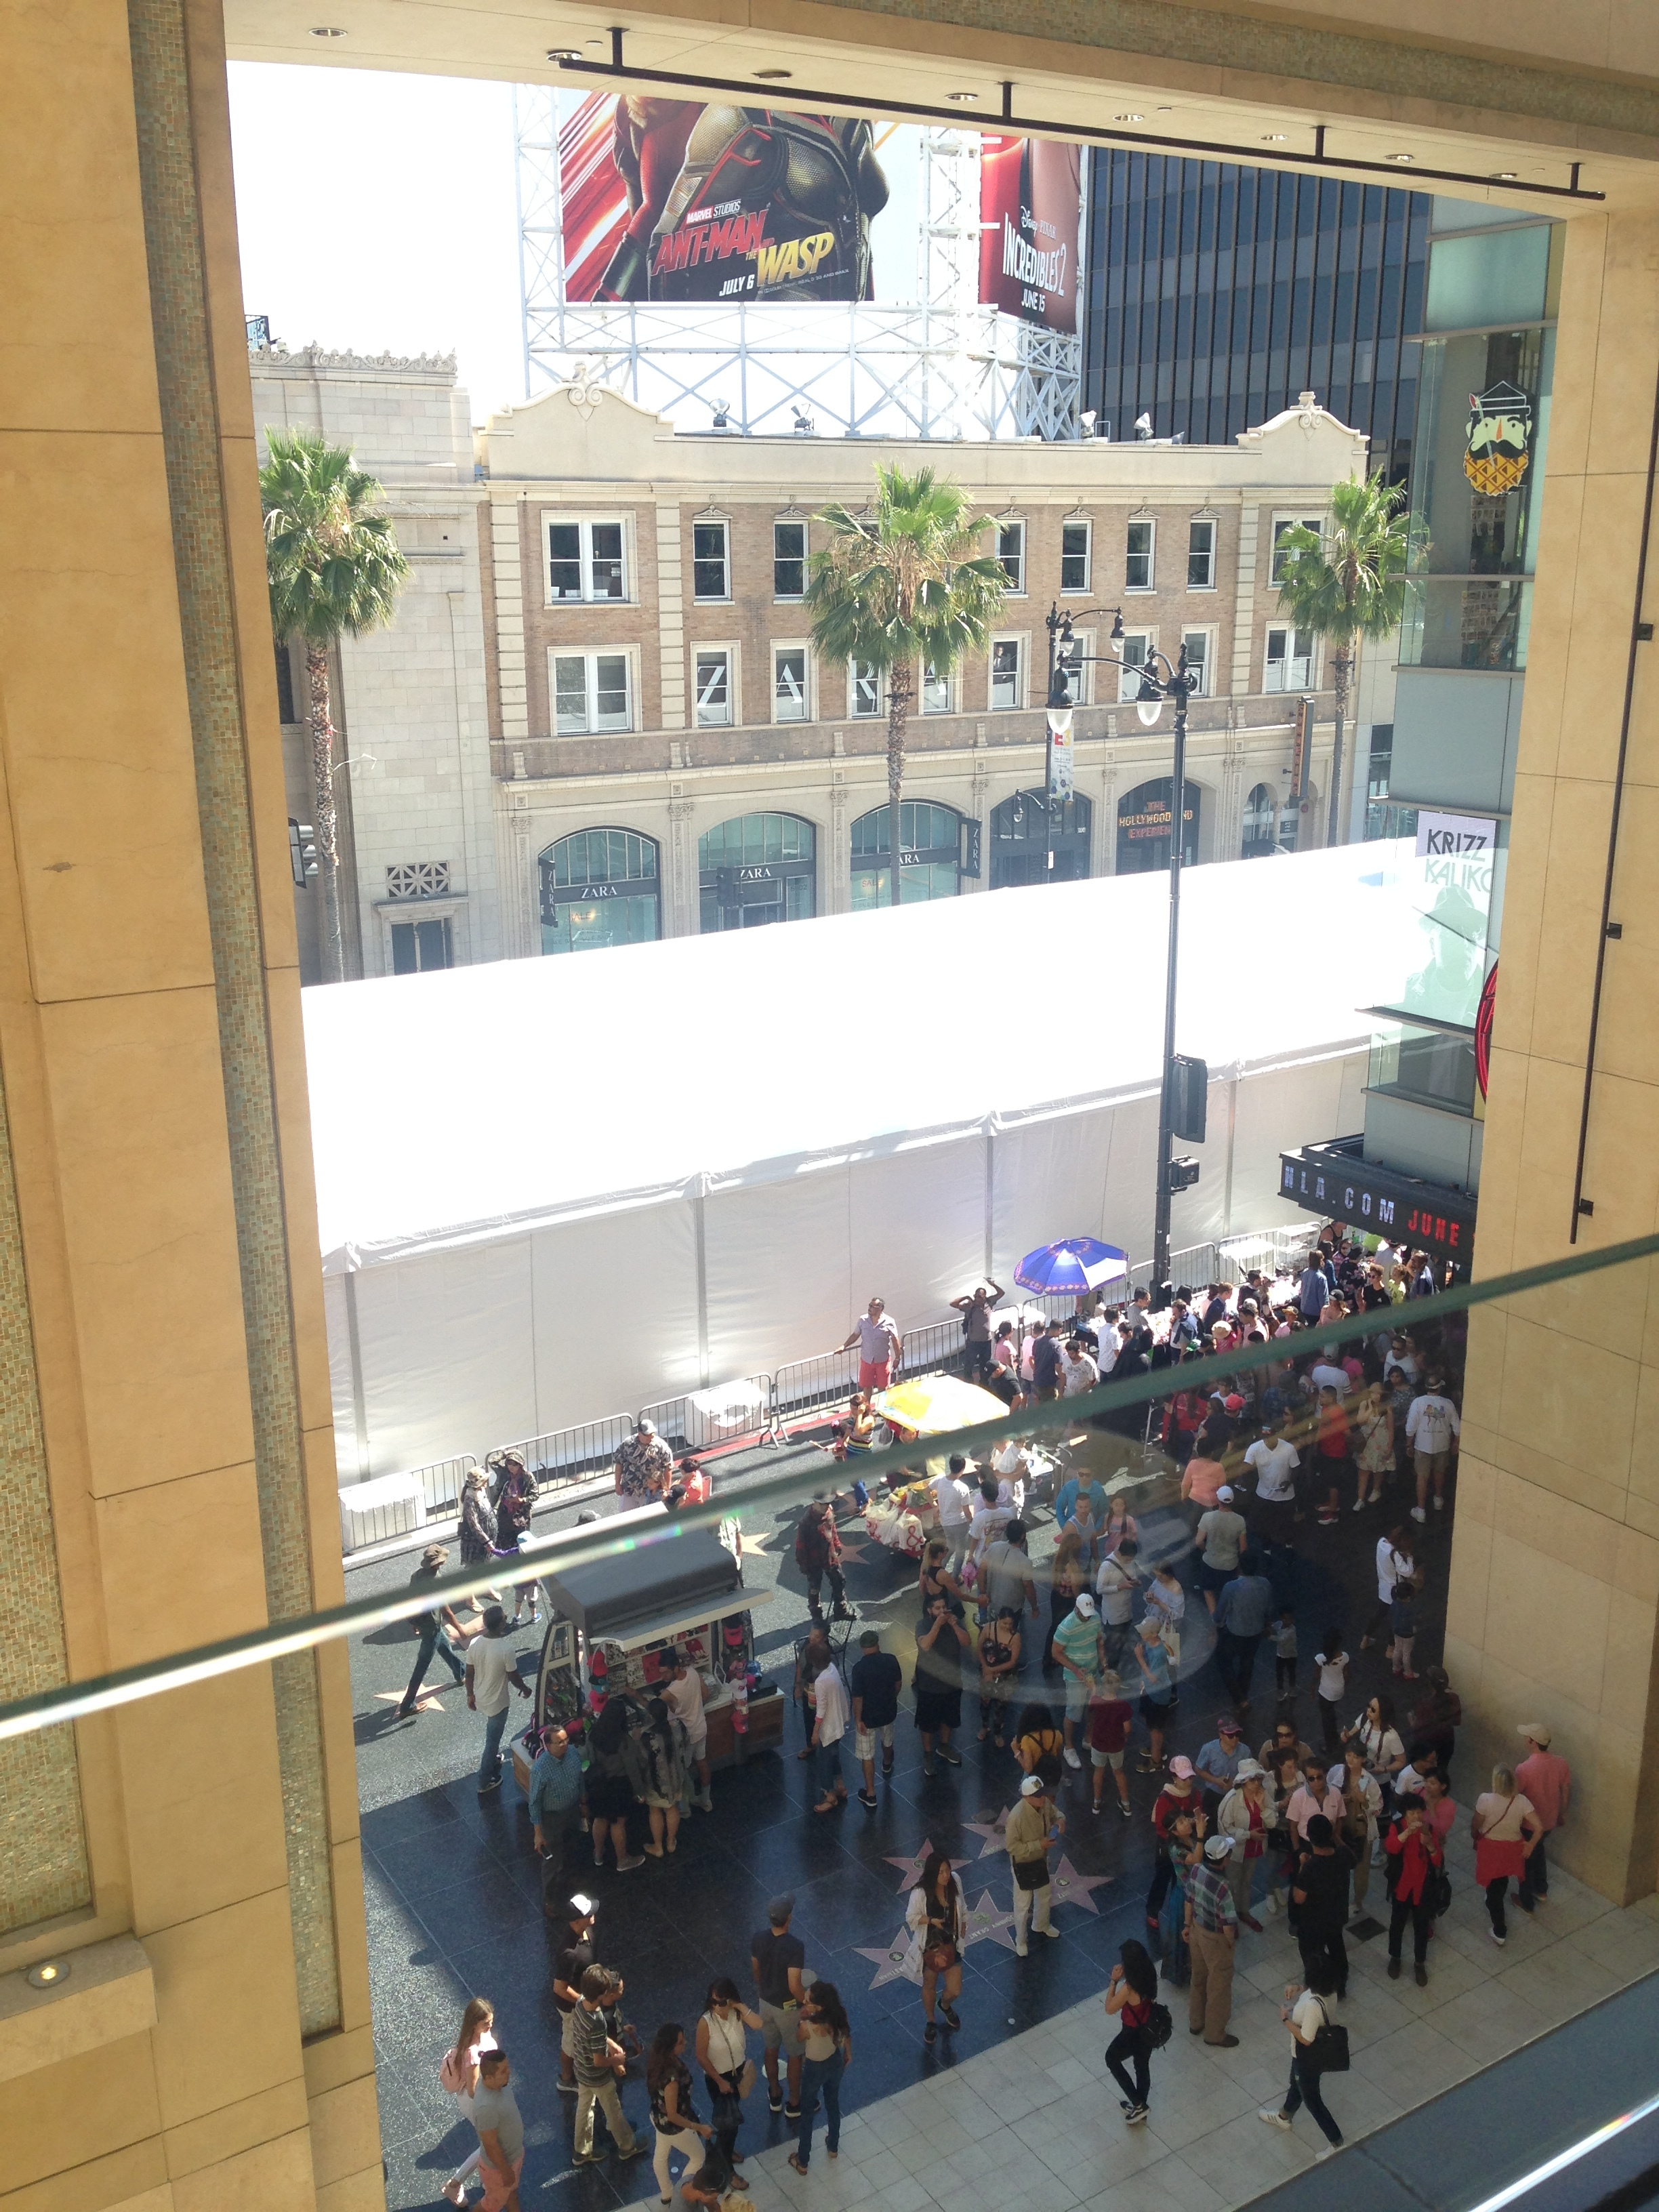 ^ Looking out to Hollywood Blvd